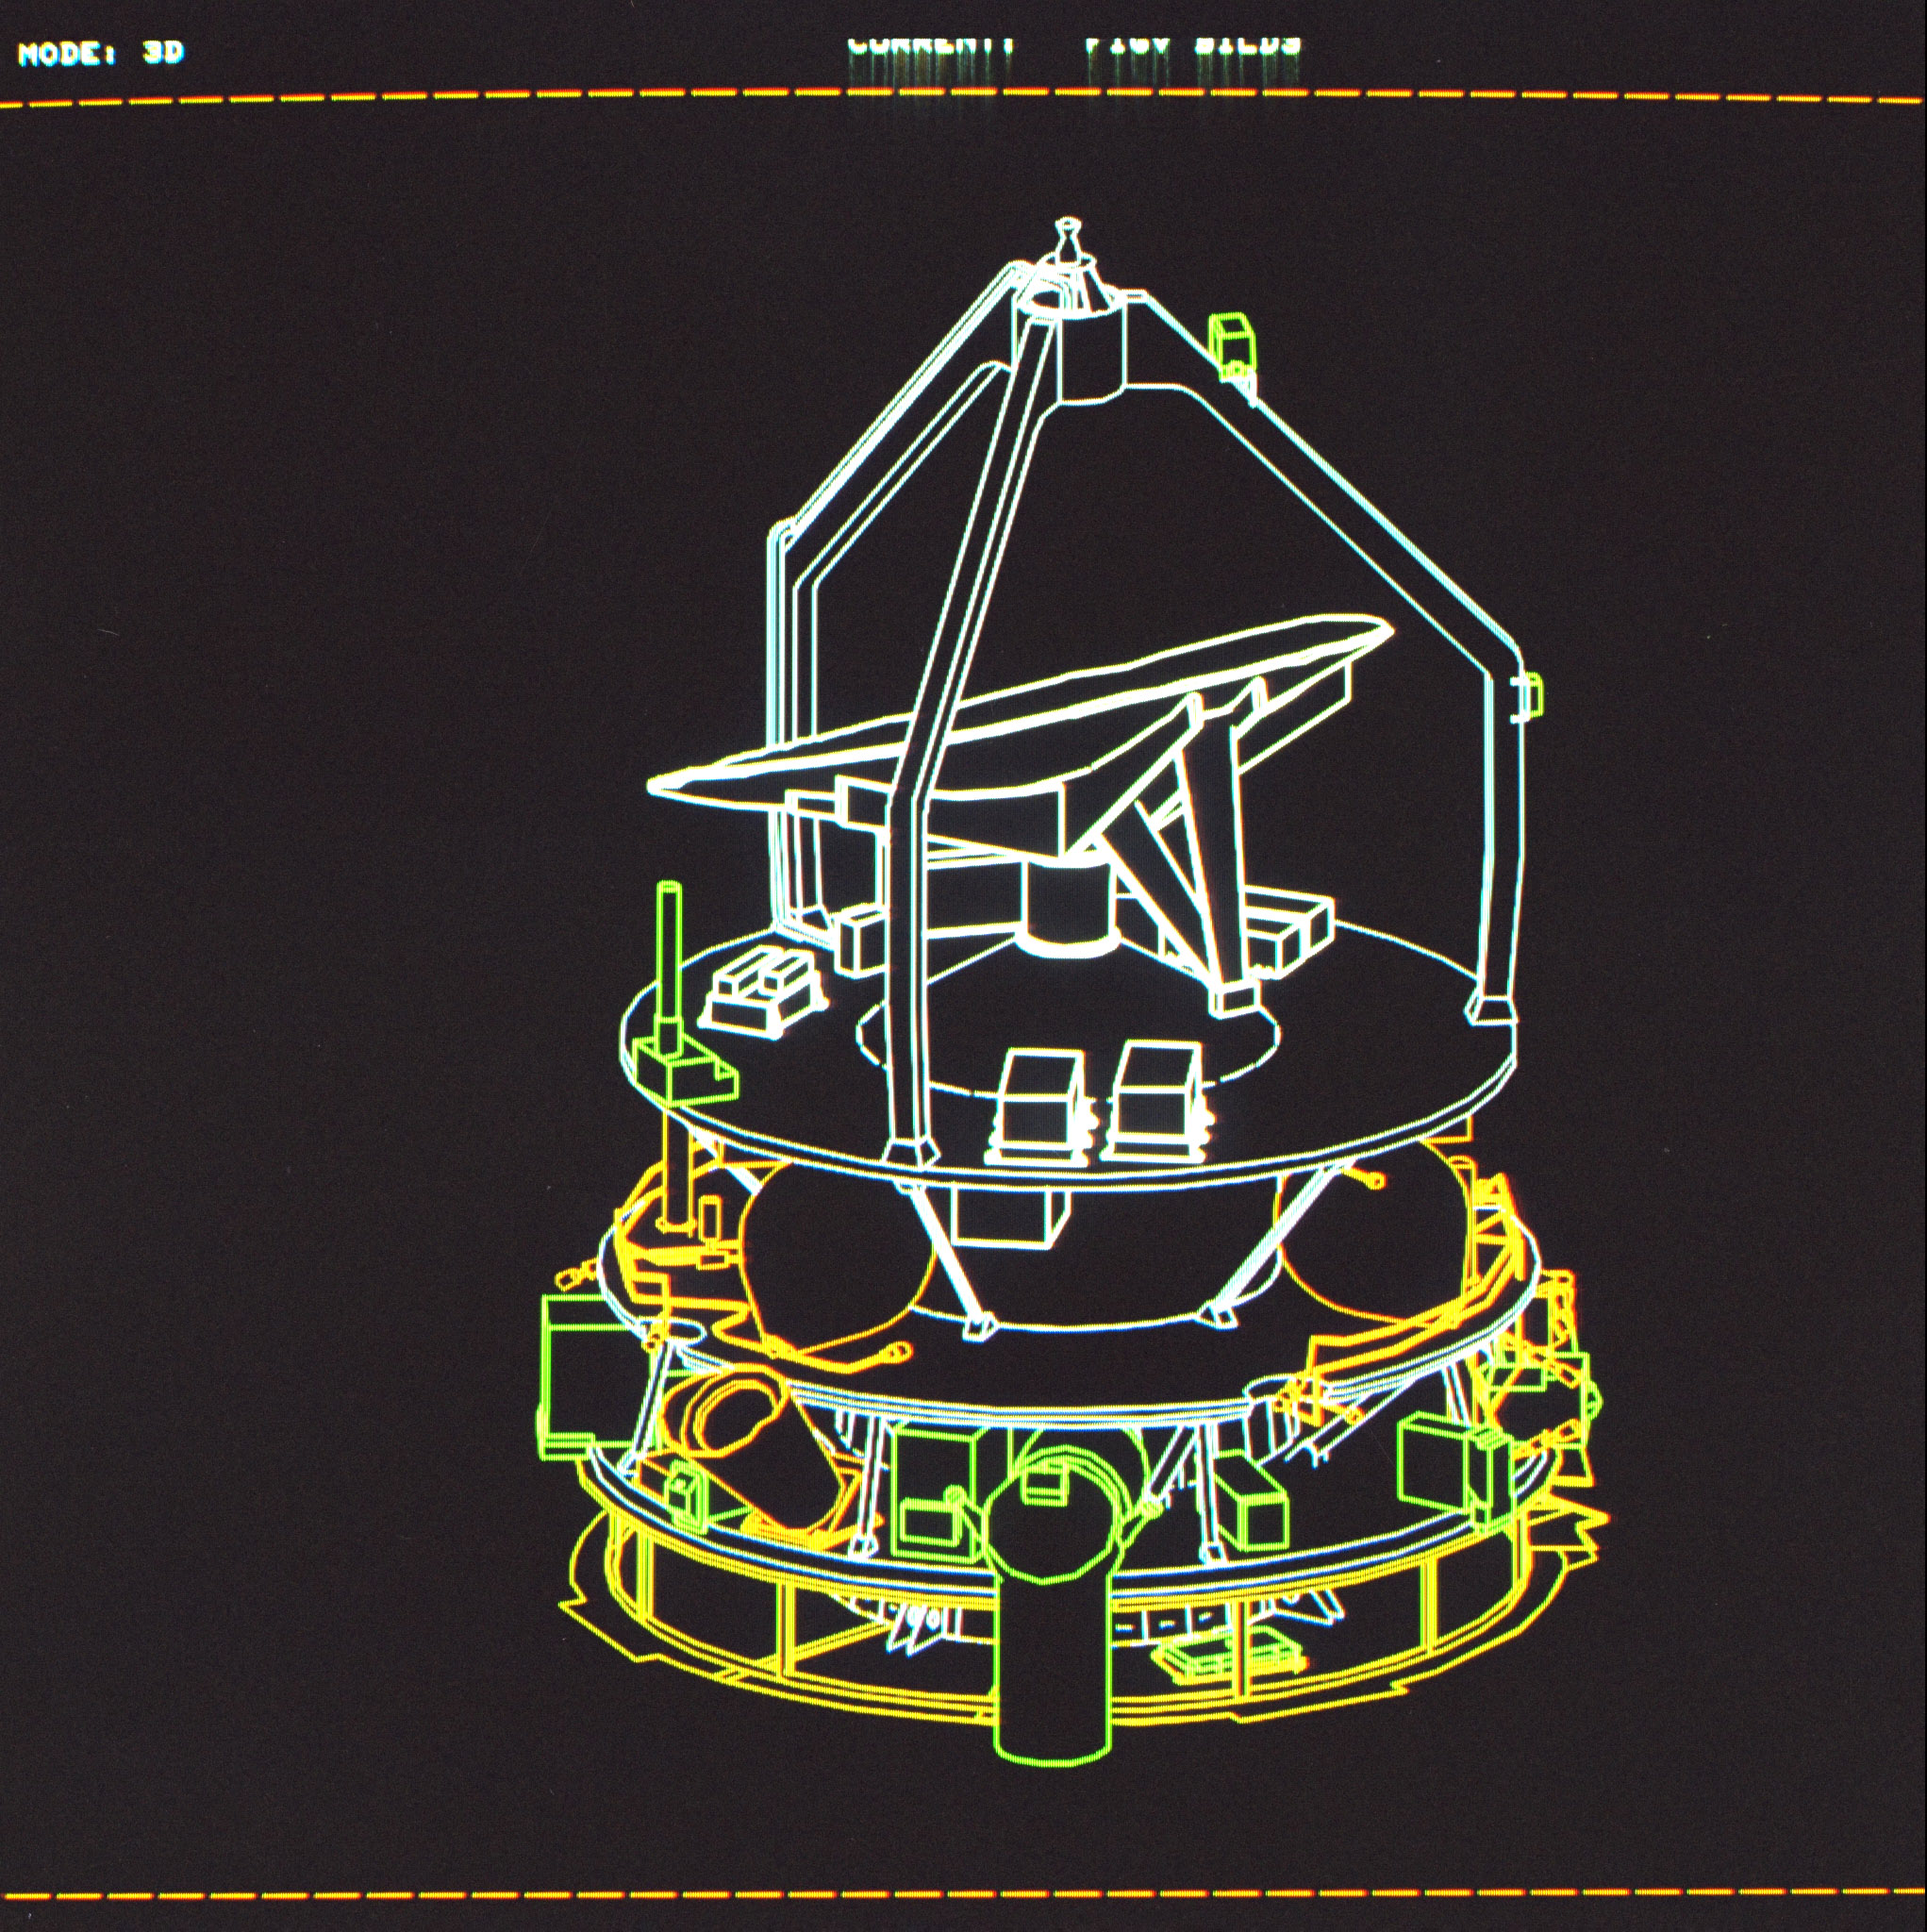 giotto spacecraft - photo #26